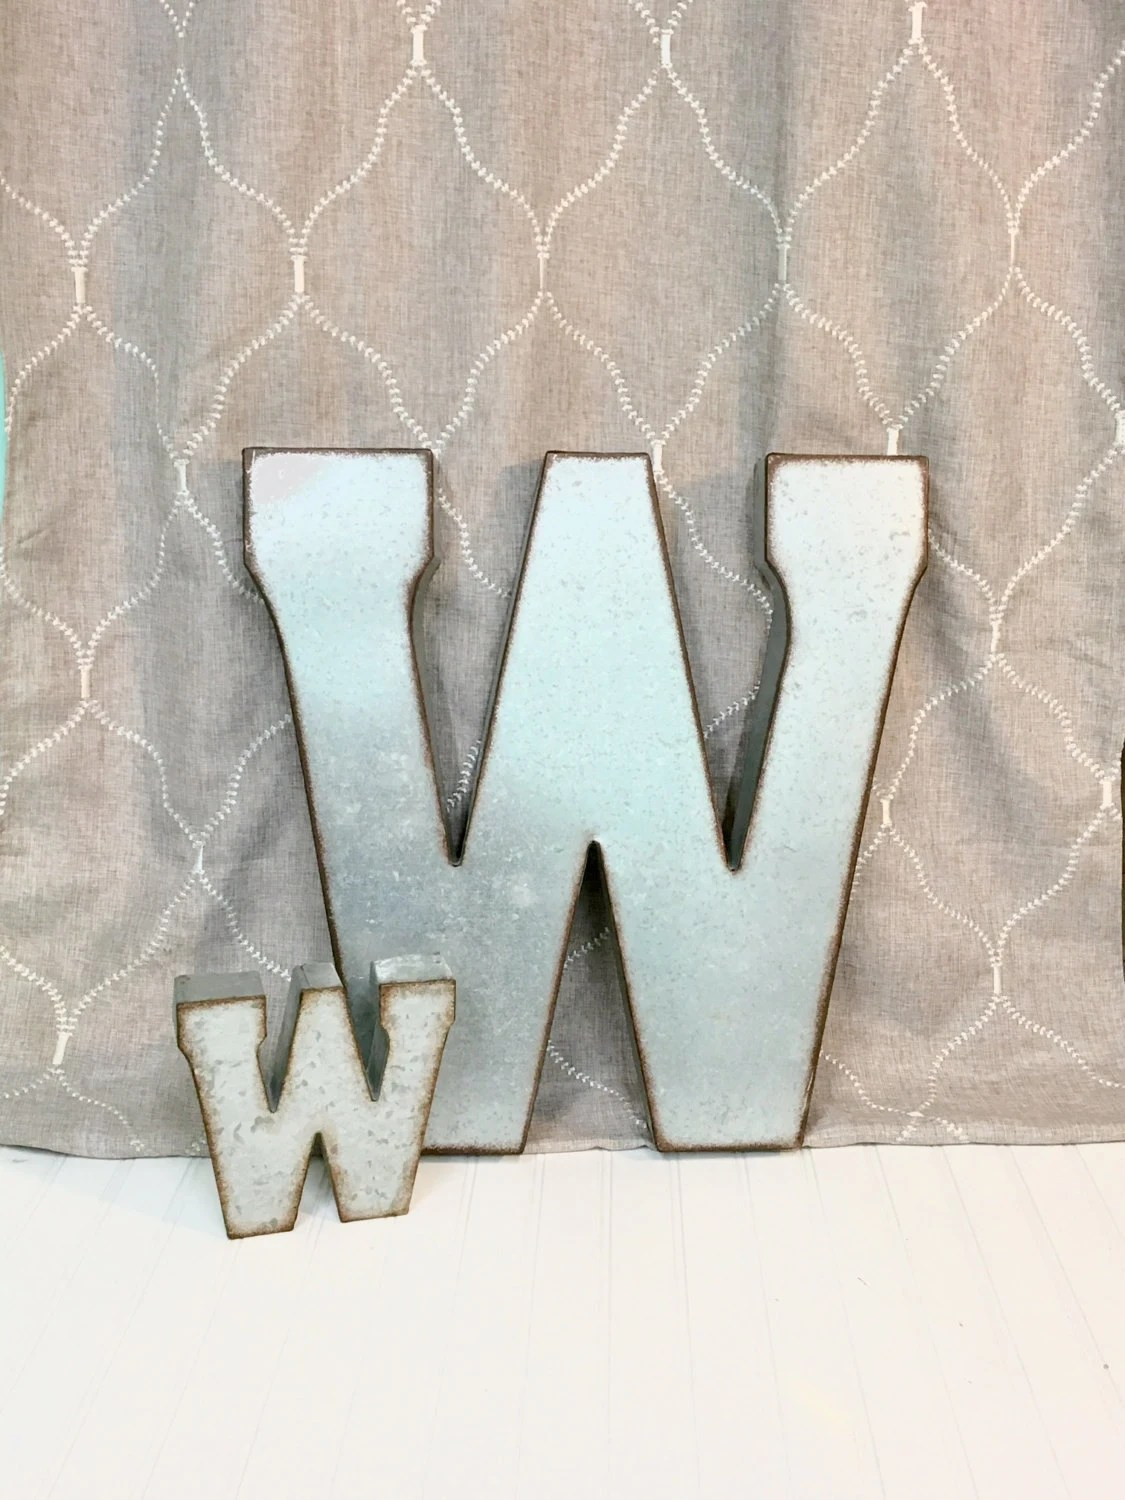 Large Metal Letter Letter W Galvanized Metal Wall Letter Large